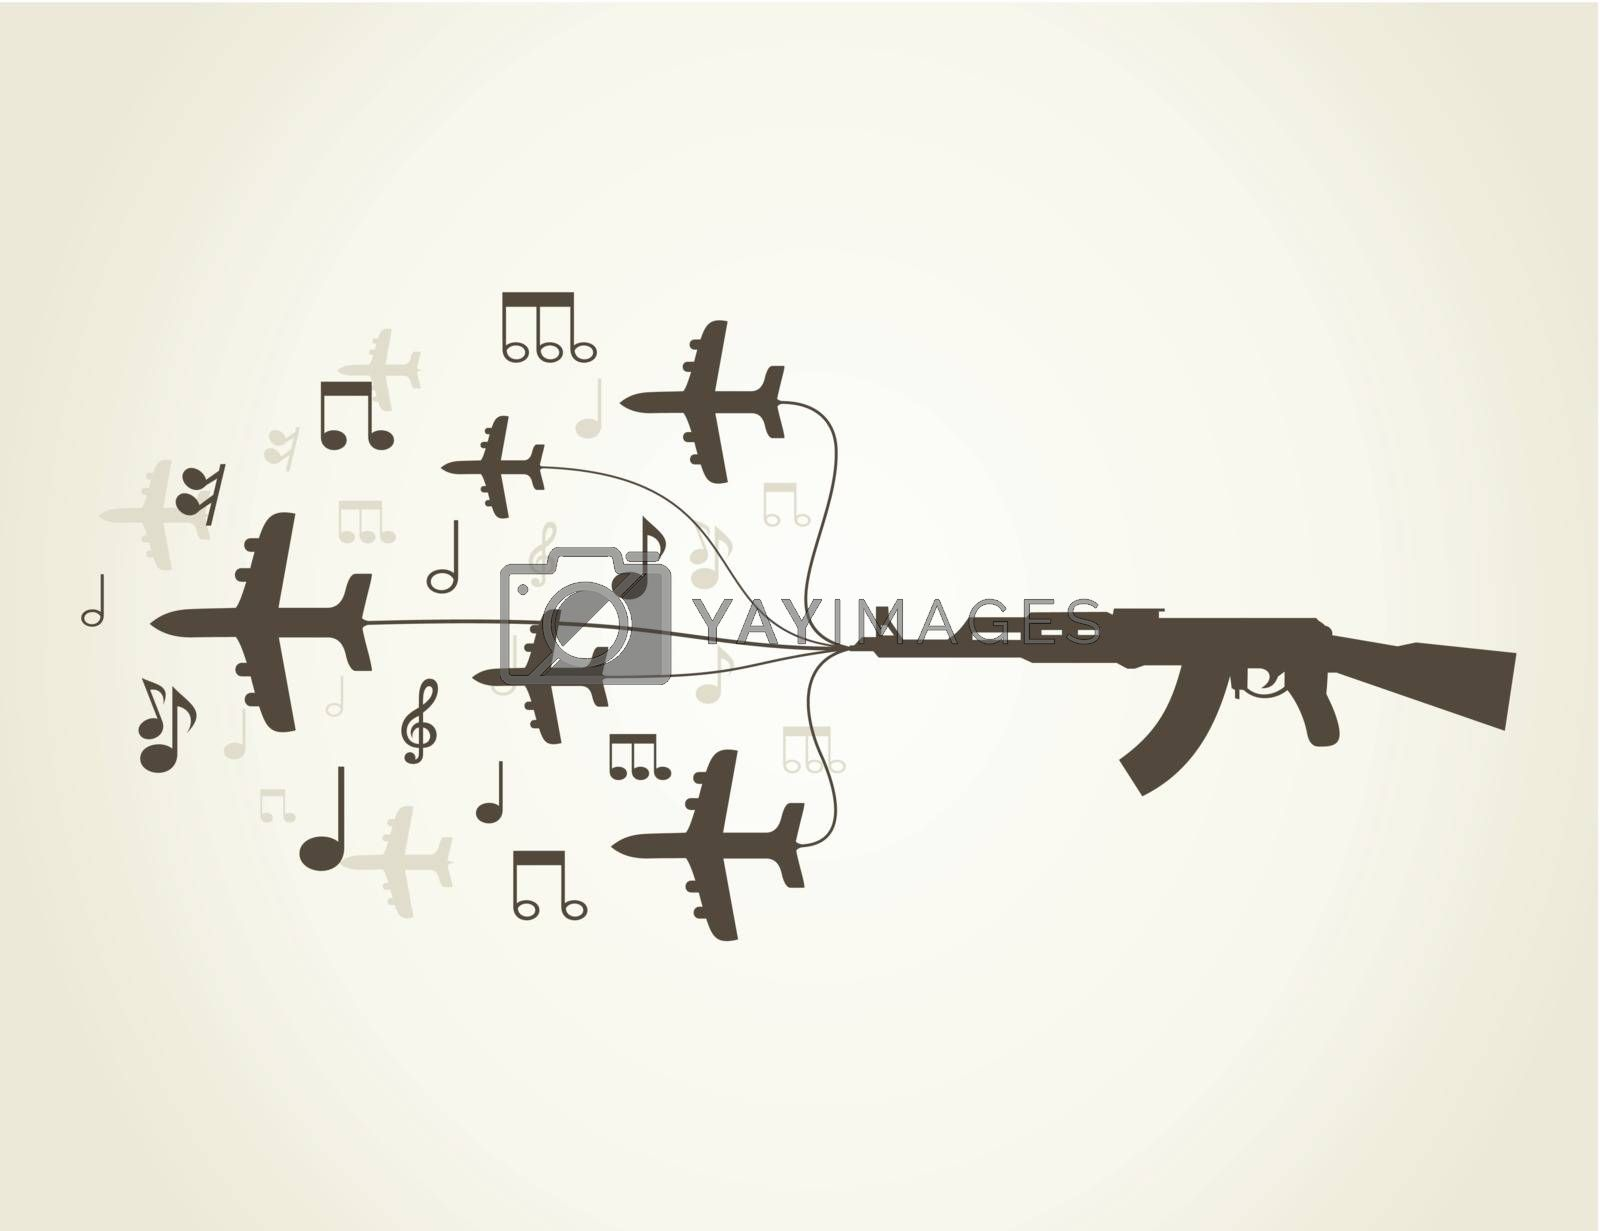 Planes and notes from the weapon. A vector illustration